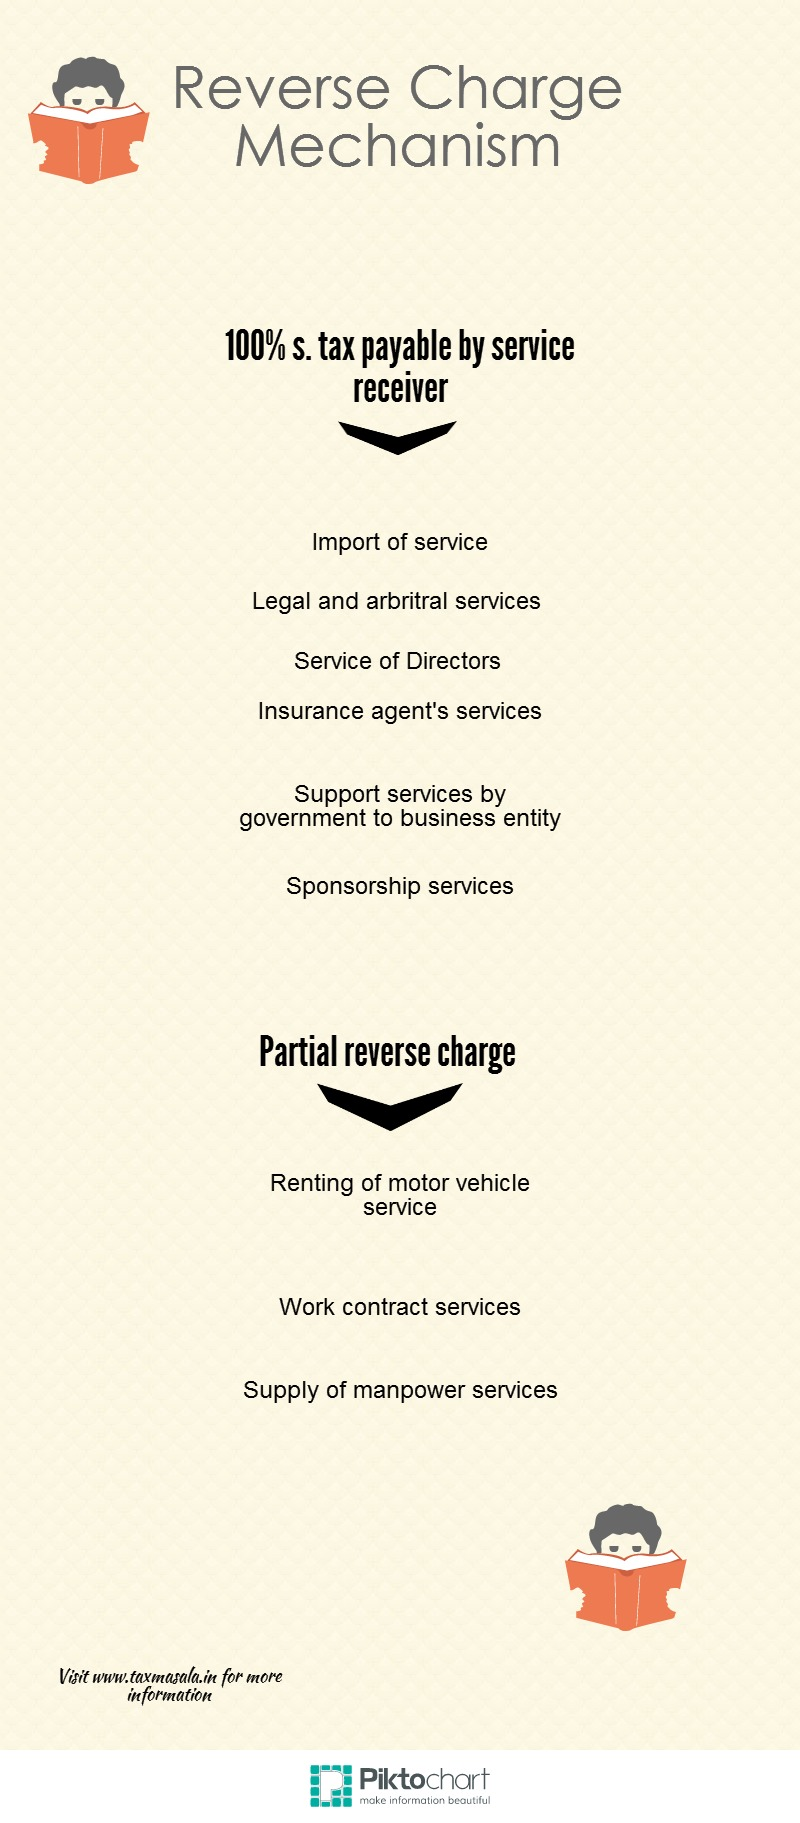 Reverse char... Reverse Charge Mechanism In Service Tax